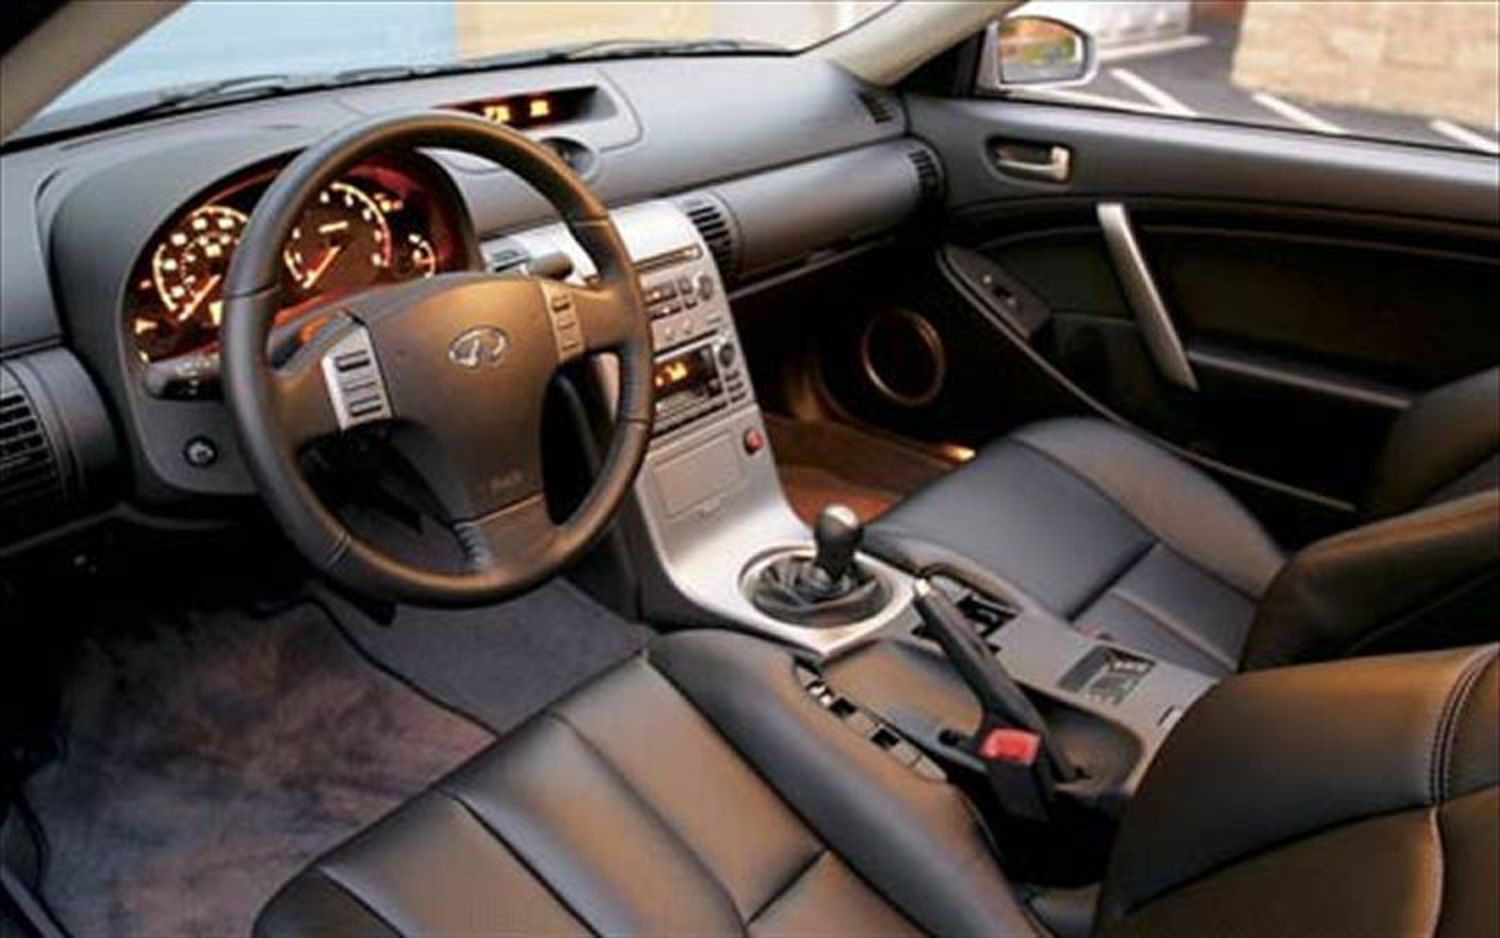 2003 infiniti g35 coupe interior image collections hd cars wallpaper 2003 infiniti g35 coupe interior free diets 2003 infiniti g35 in interior ebay vanachro image collections vanachro Image collections